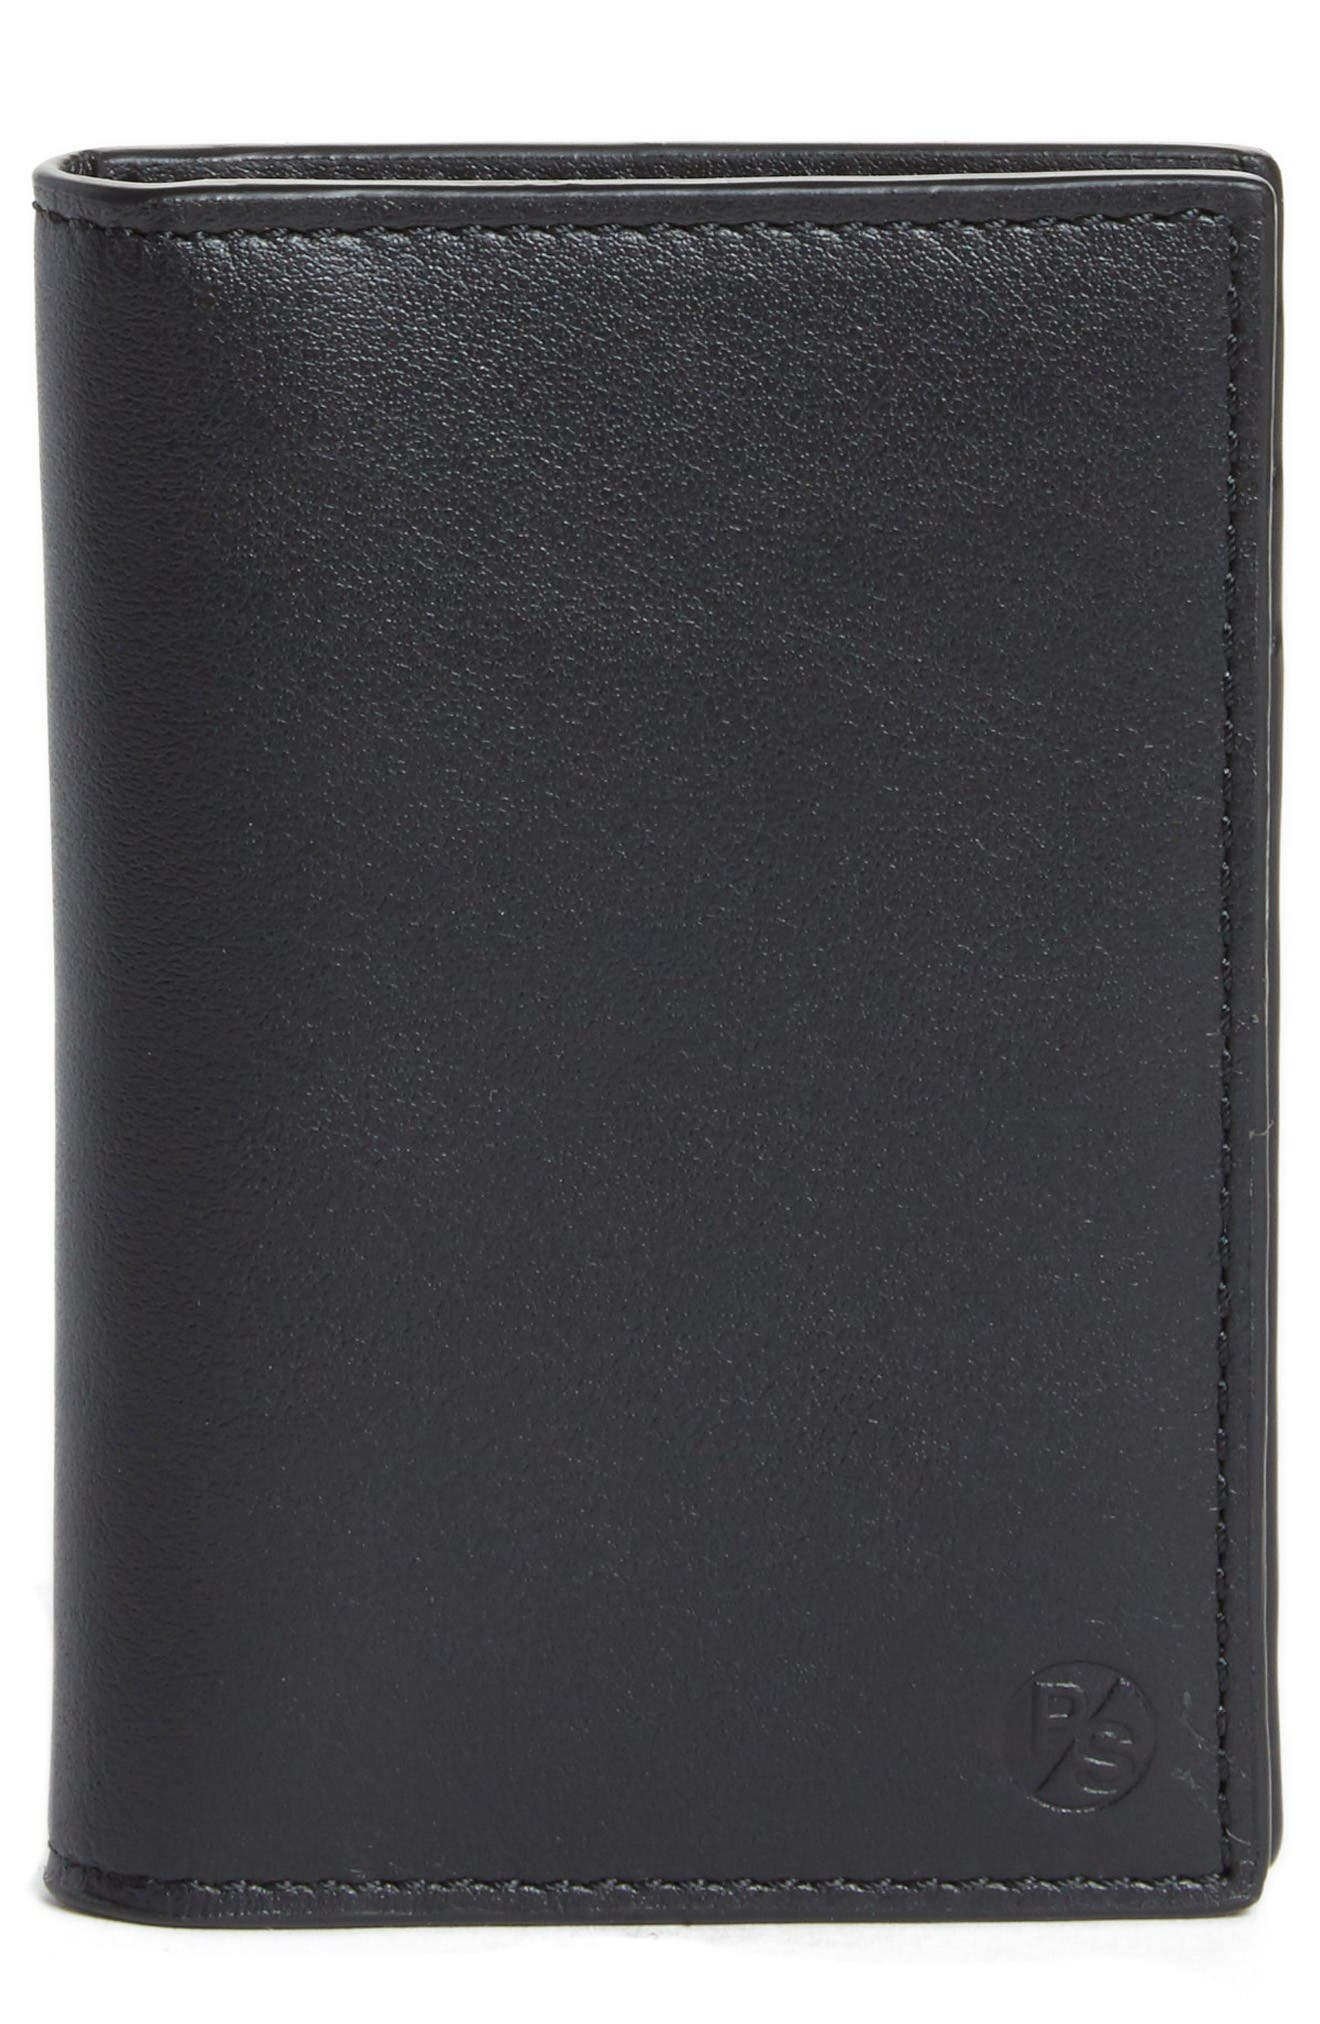 Color Accent Leather Wallet,                             Main thumbnail 1, color,                             Black